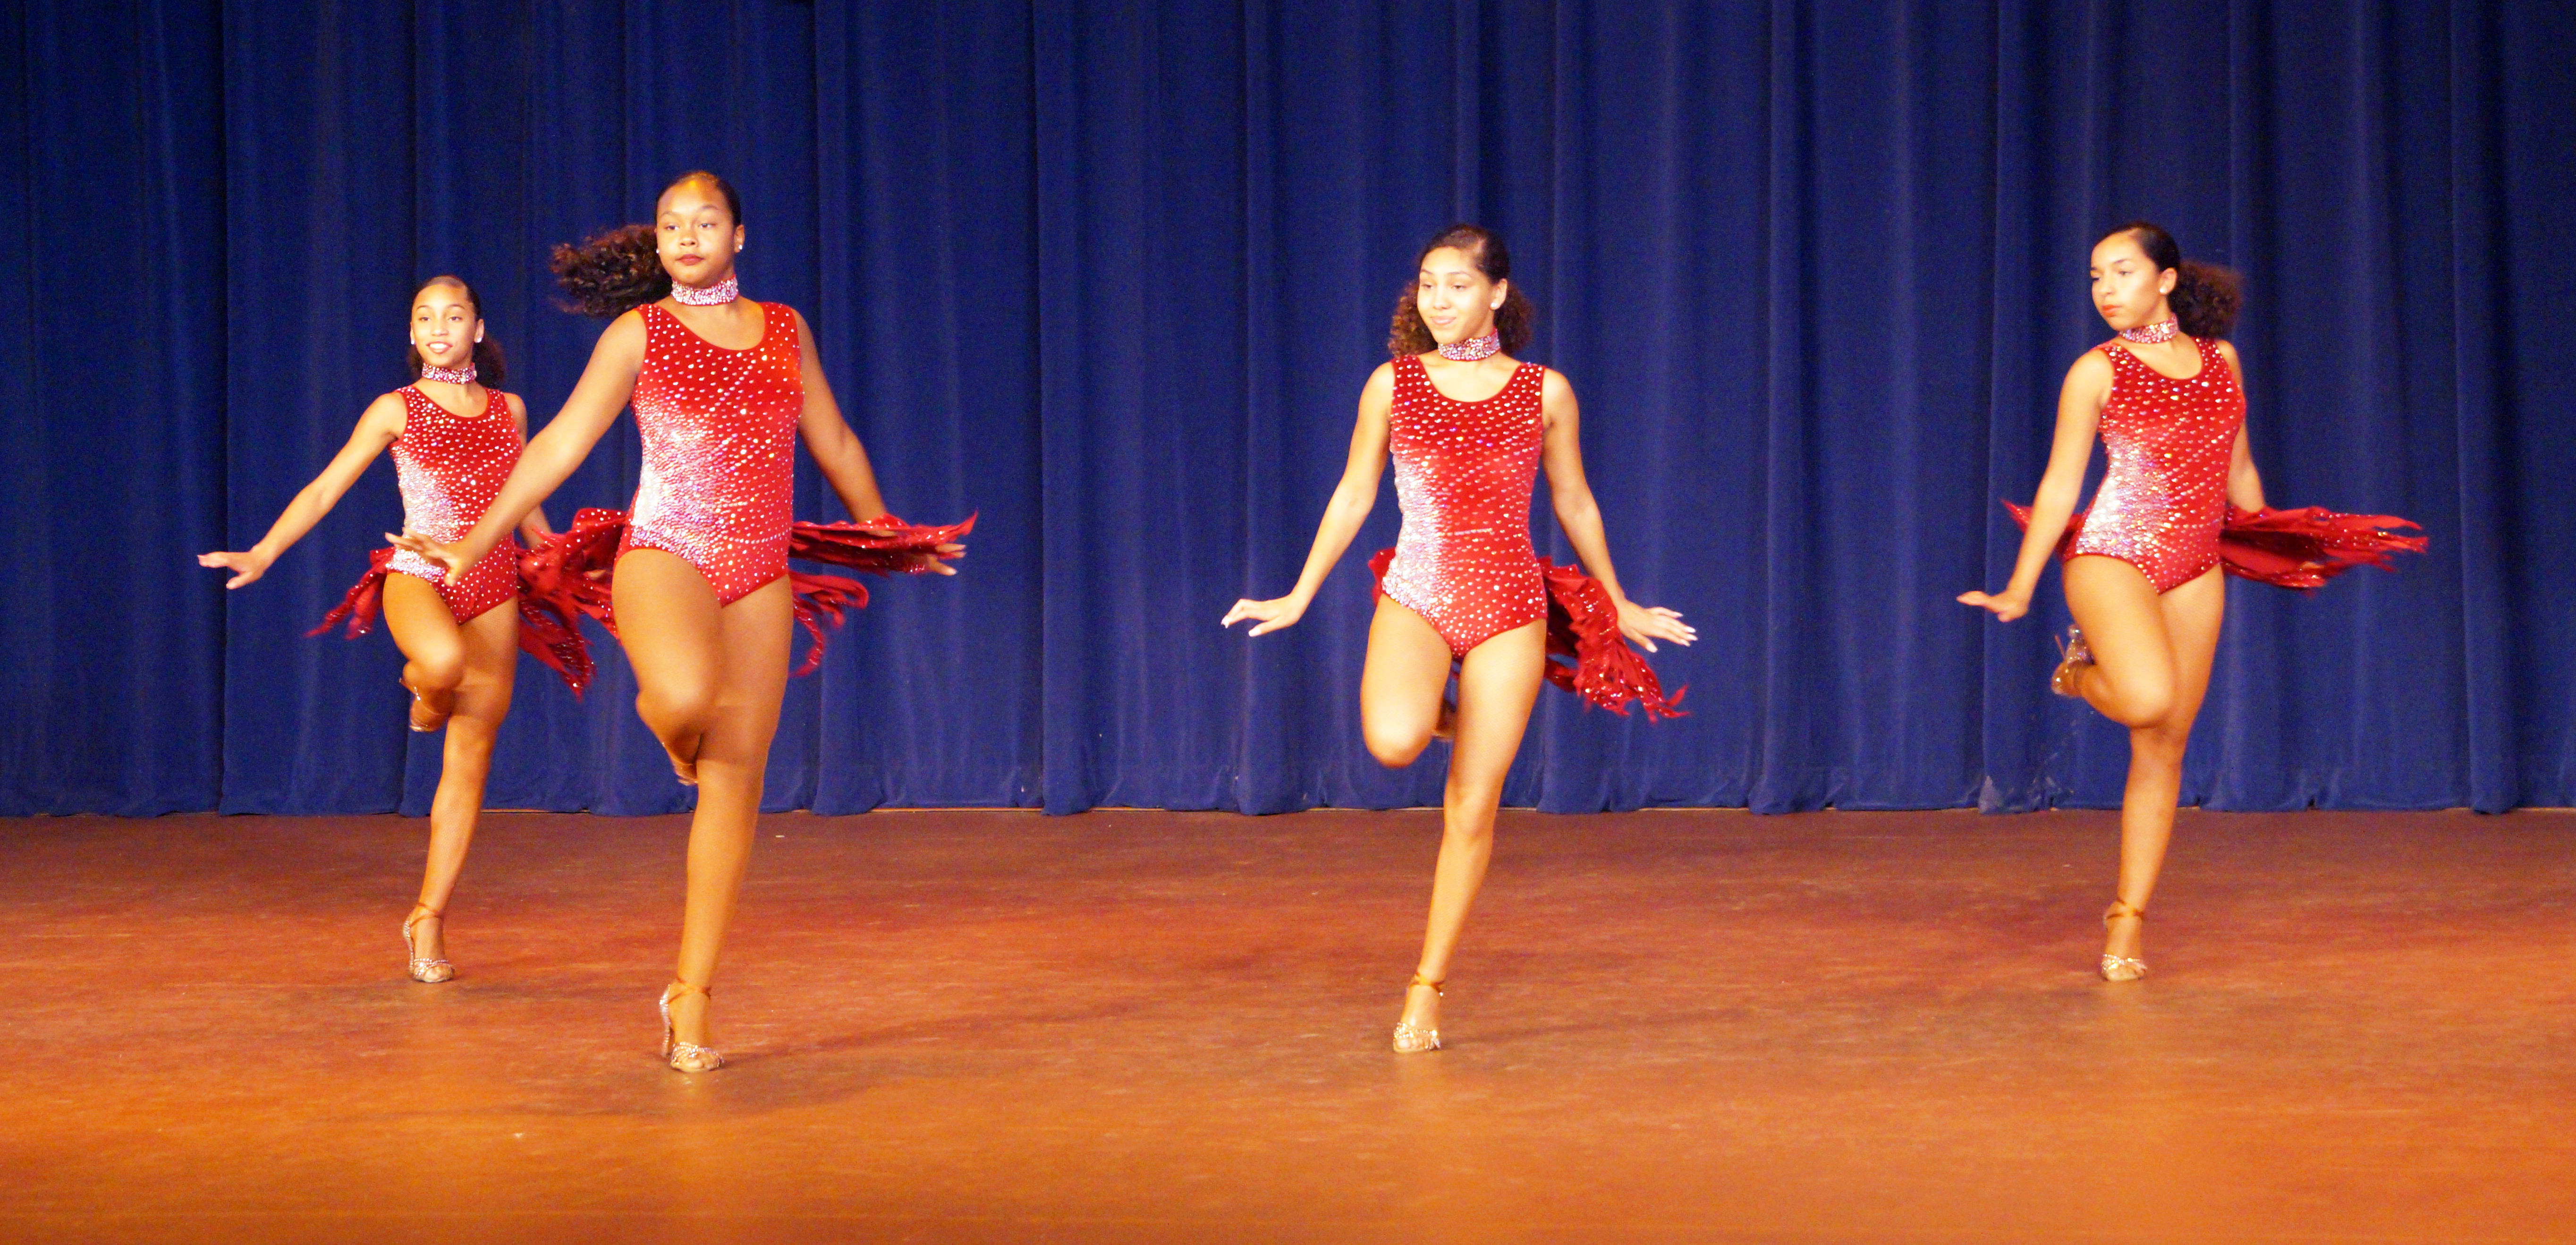 Salsabrositas. Photo courtesy of the Marcus Center for the Performing Arts.